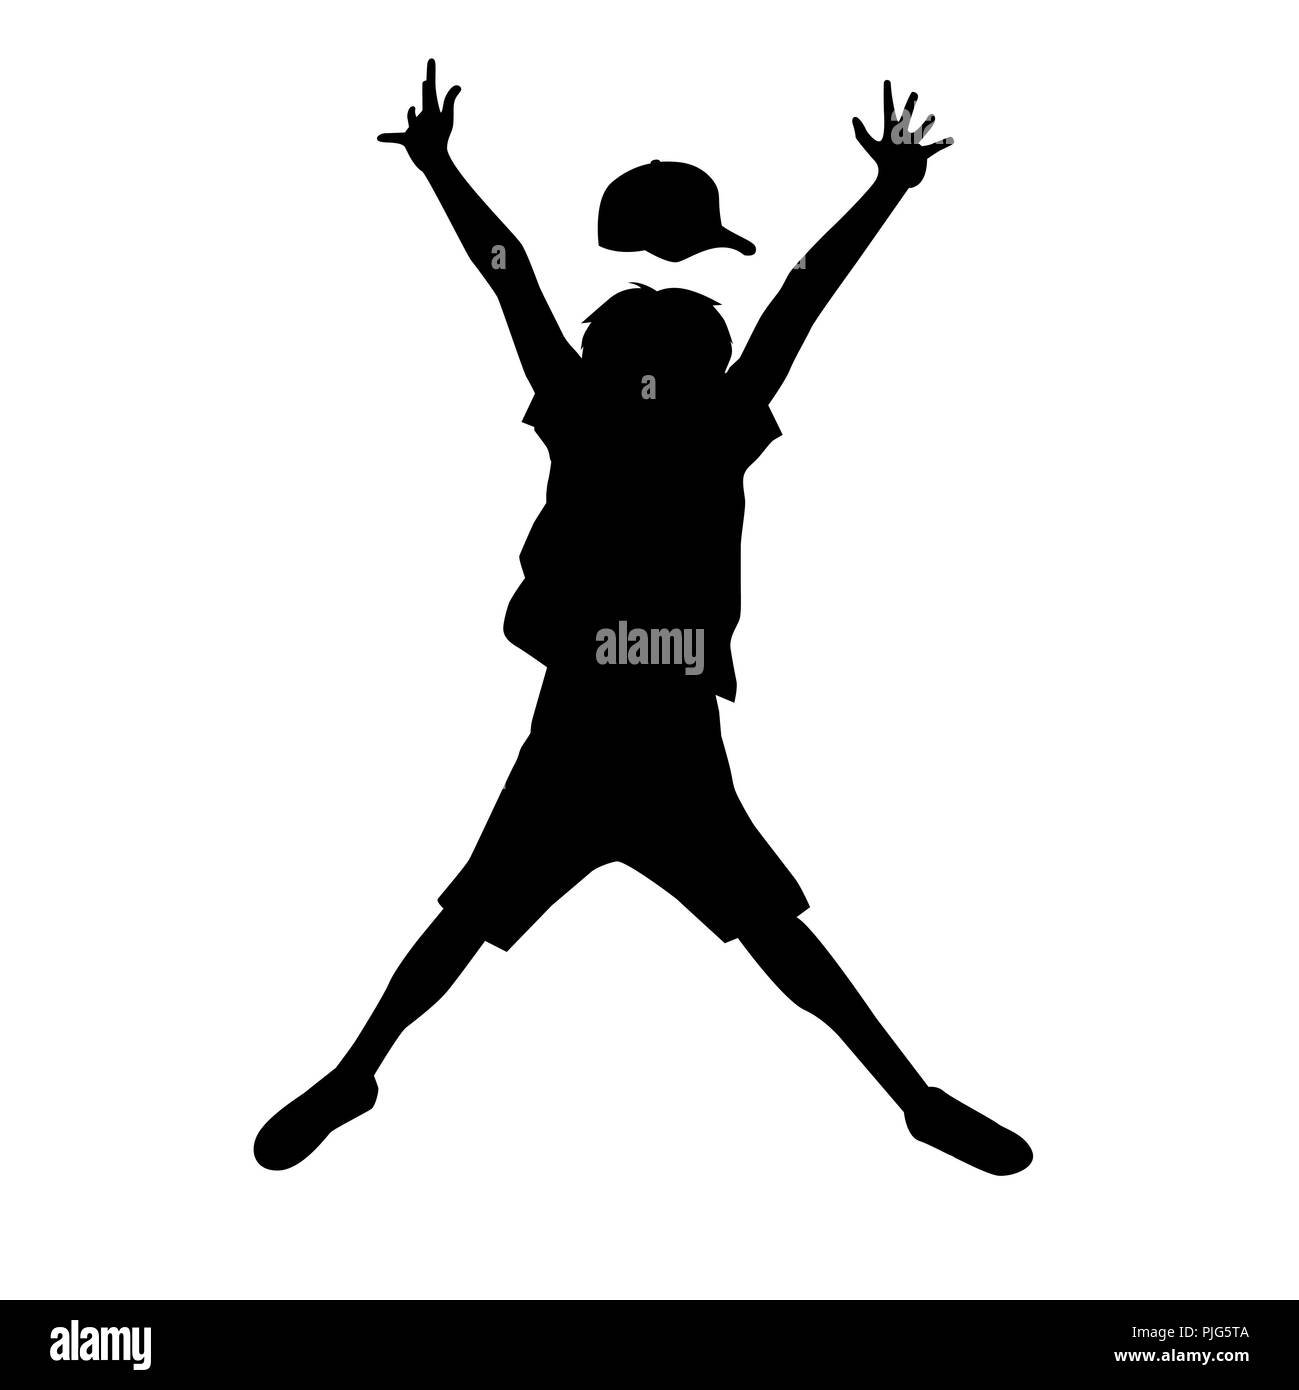 61d2f7e3f18e Boy Silhouette Jumping Joy Vector Black and White Stock Photos ...